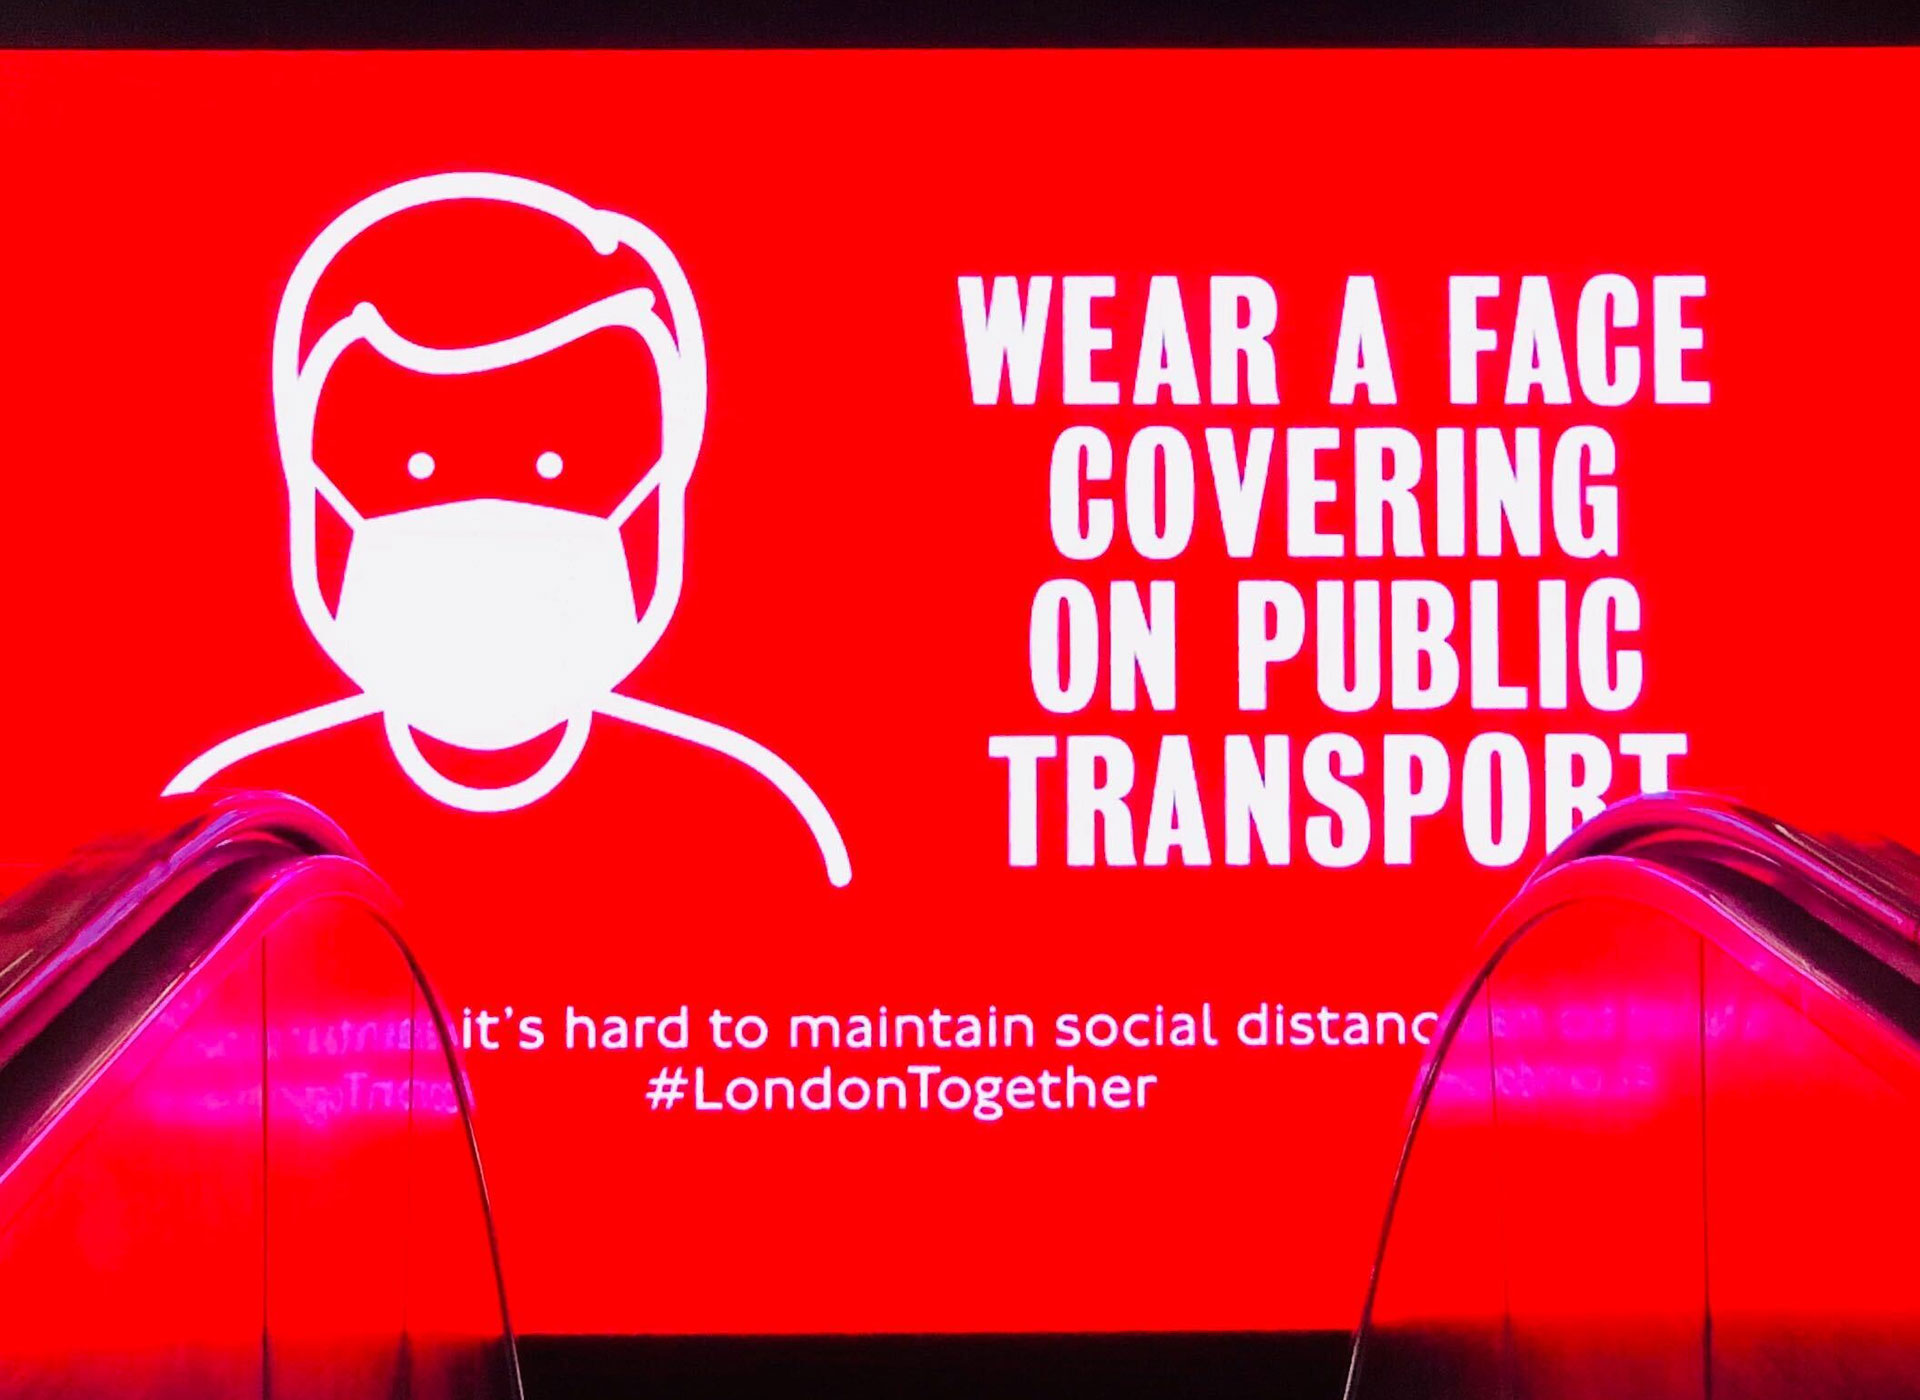 Artificial intelligence harnessed to enforce face mask use on public transport and beyond